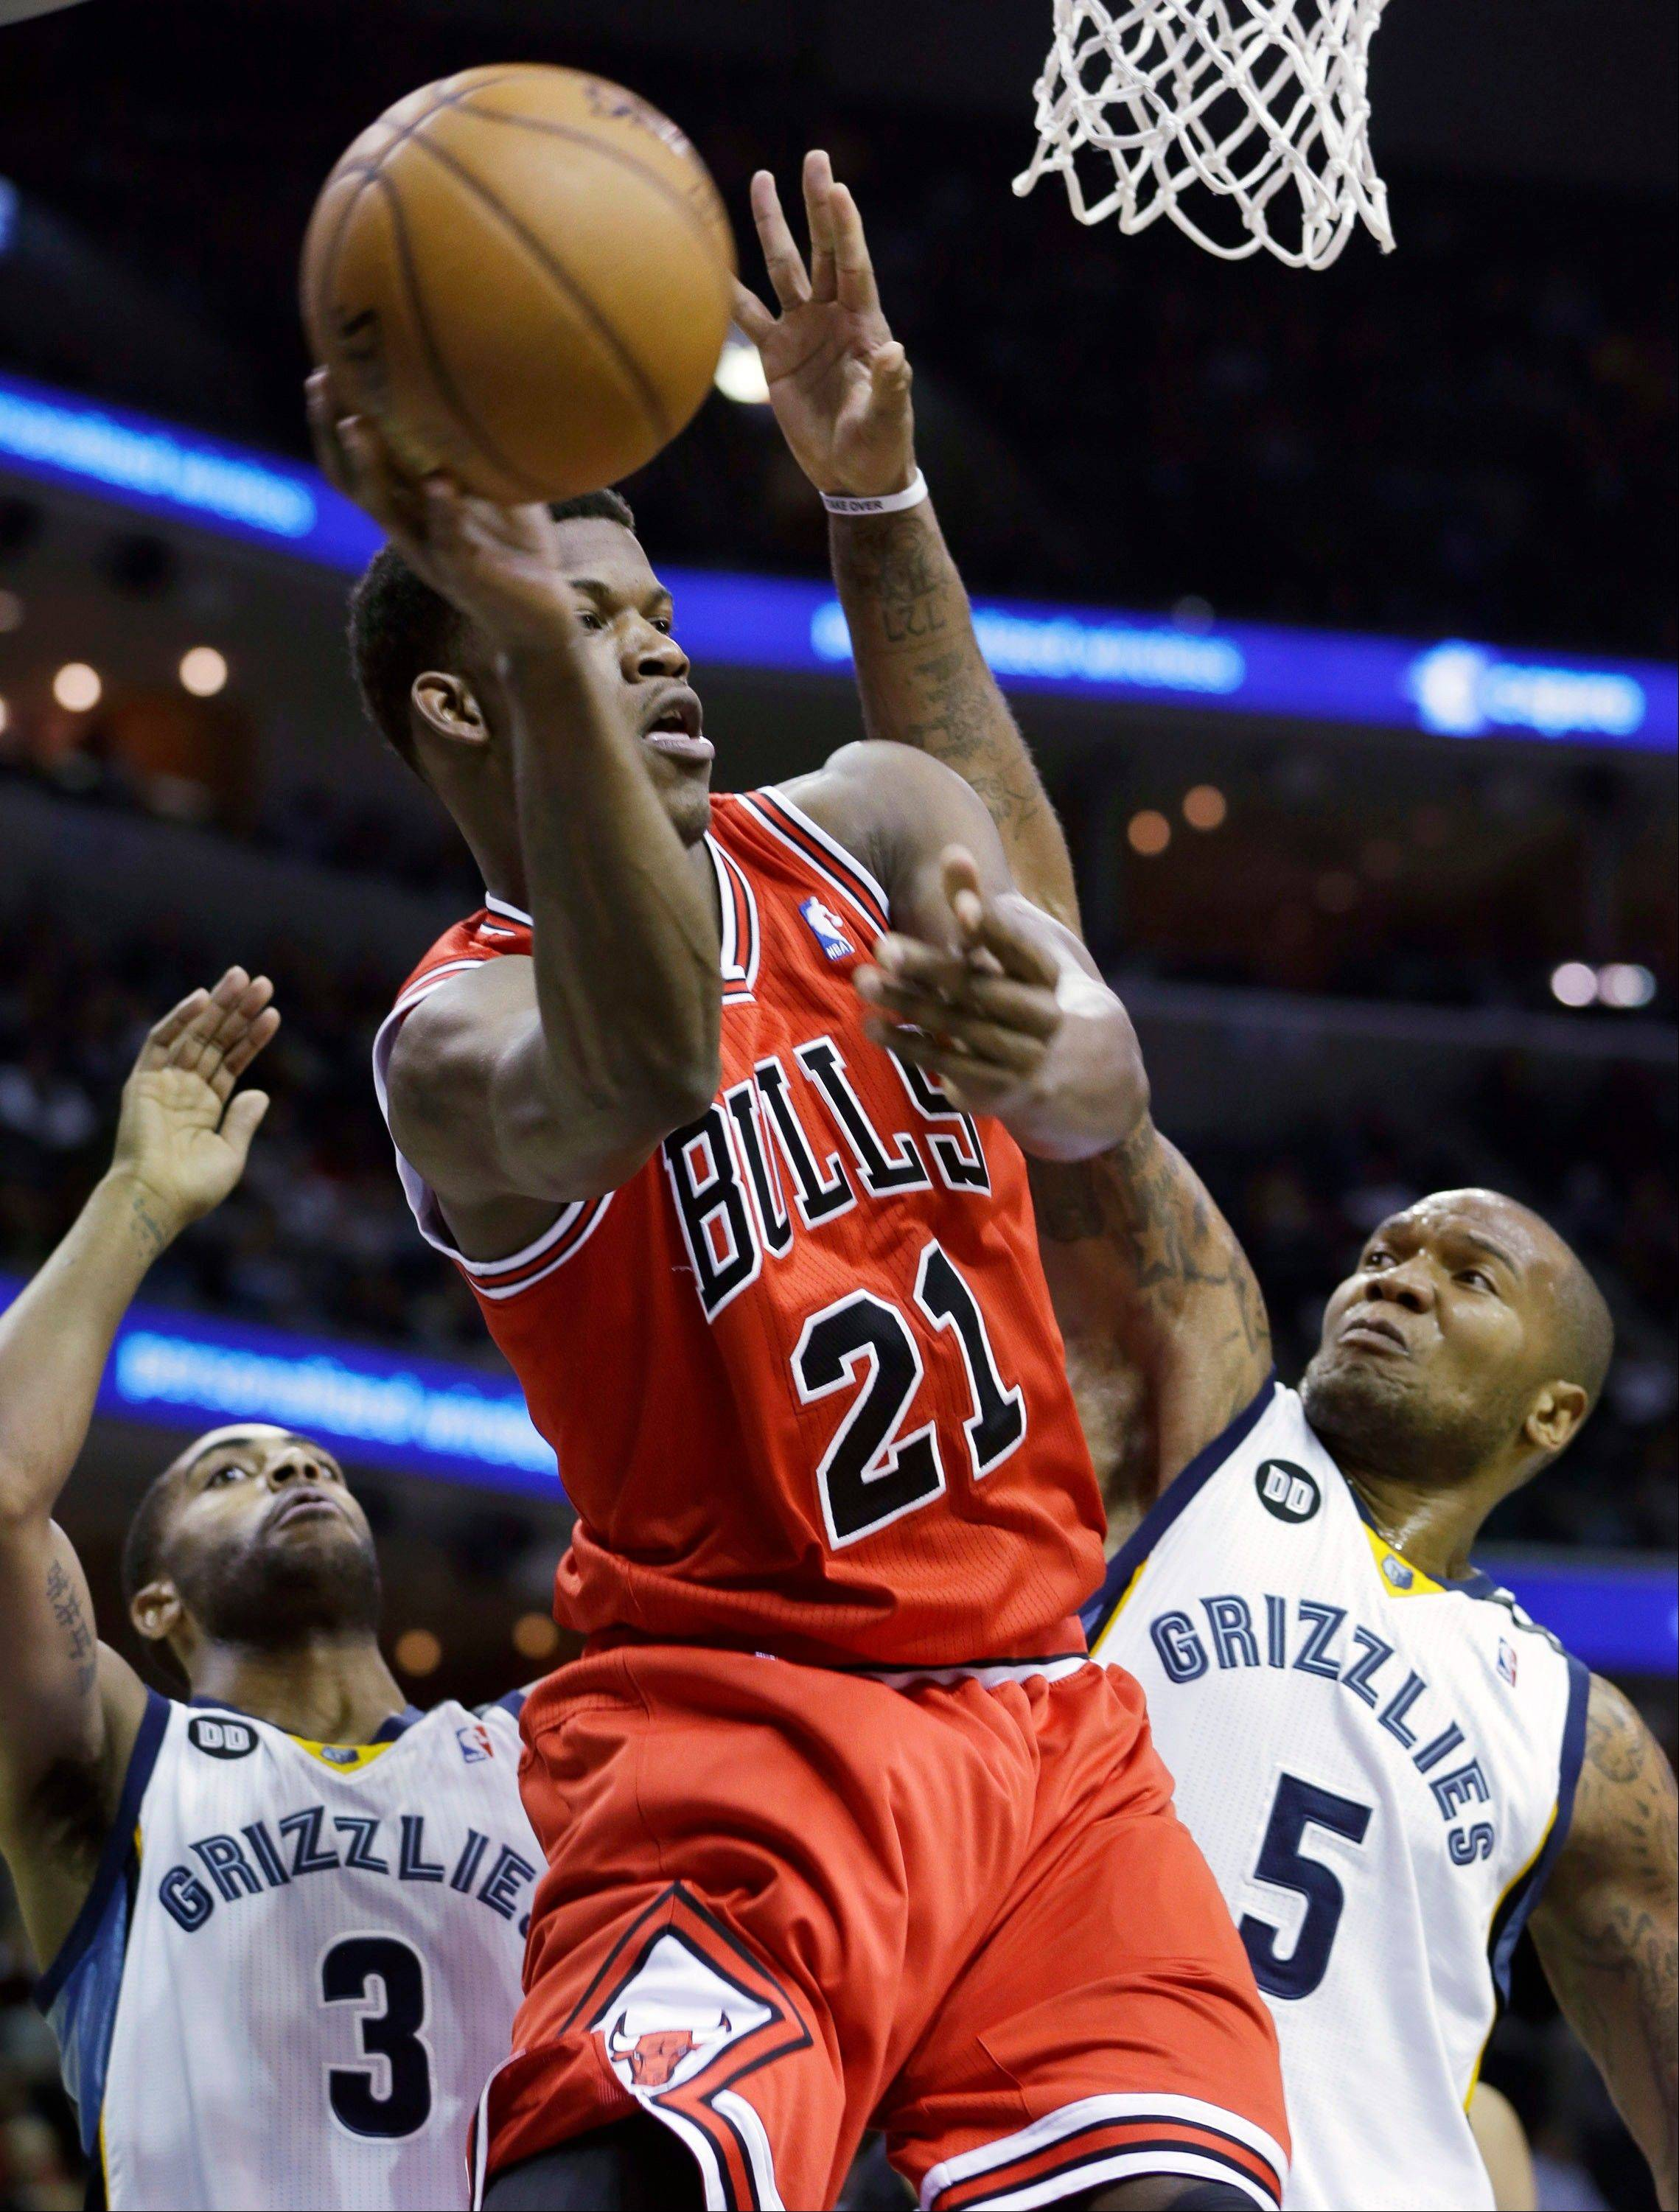 Chicago Bulls� Jimmy Butler (21) gets an offensive rebound next to Memphis Grizzlies� Wayne Ellington (3) and Marreese Speights (5) during first half of an NBA basketball game Monday night in Memphis, Tenn. The Bulls would go on to lose 80-71.